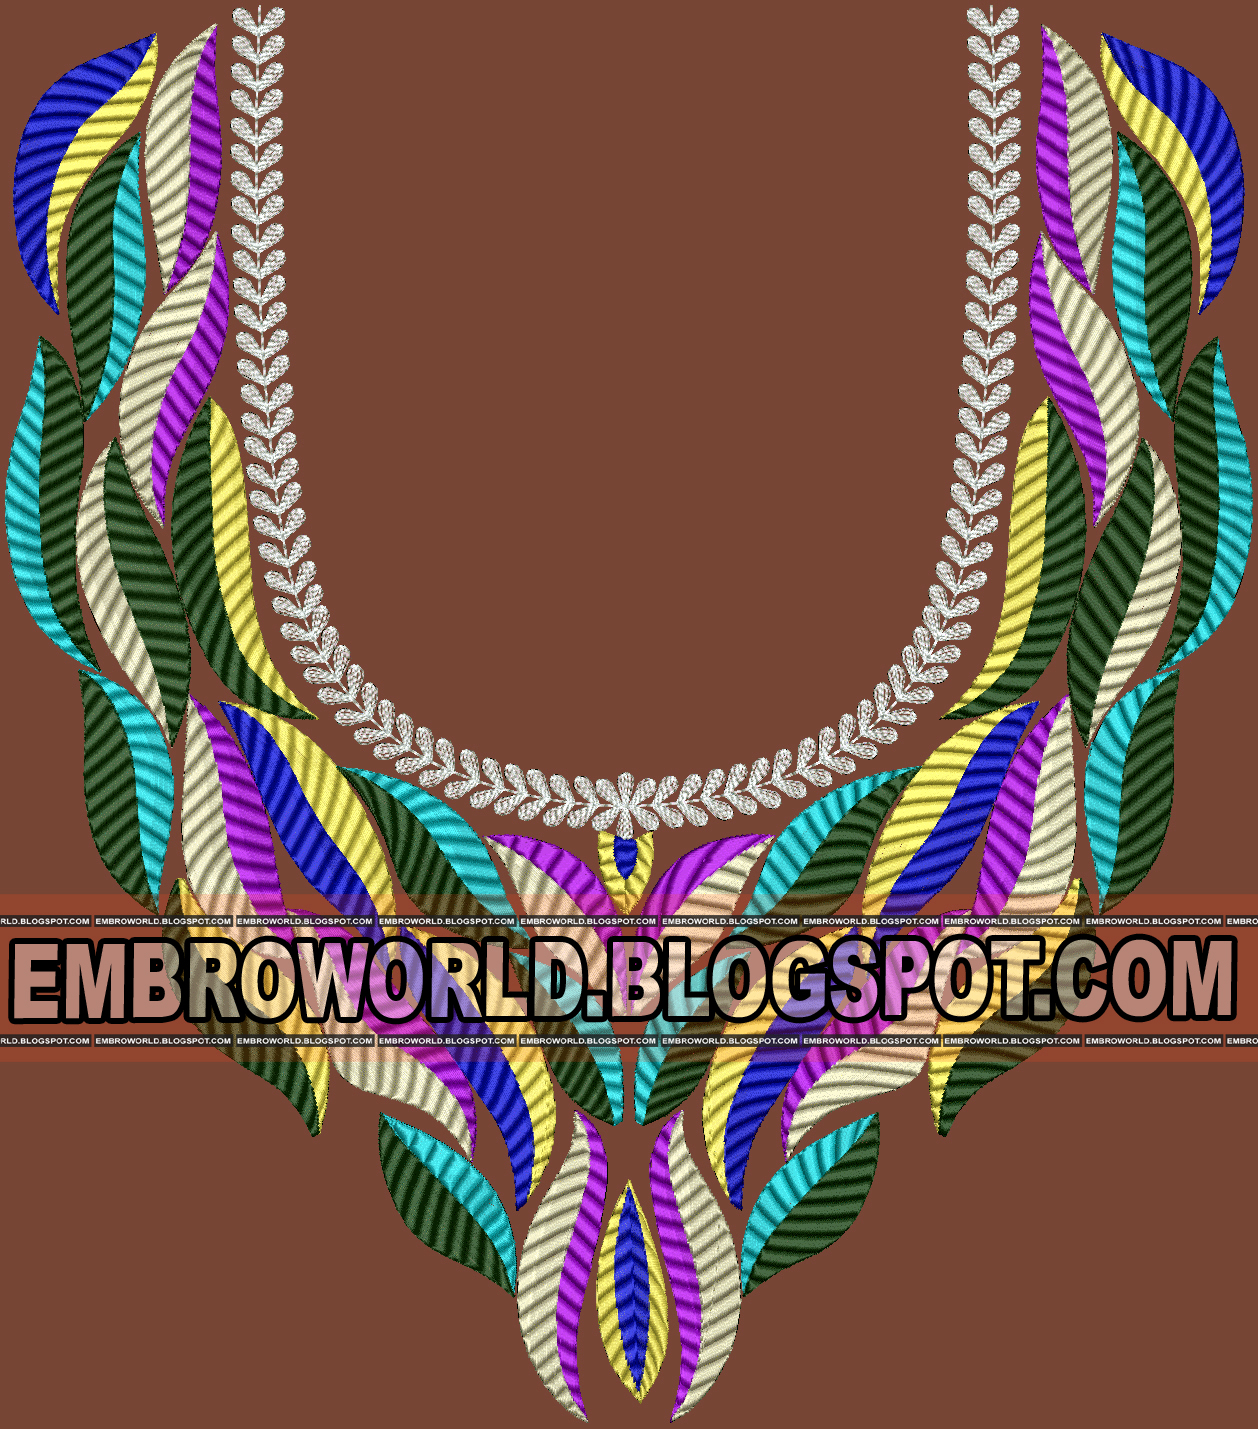 Premium Range Sizzling Embroidery Designs - Latest Embroidery